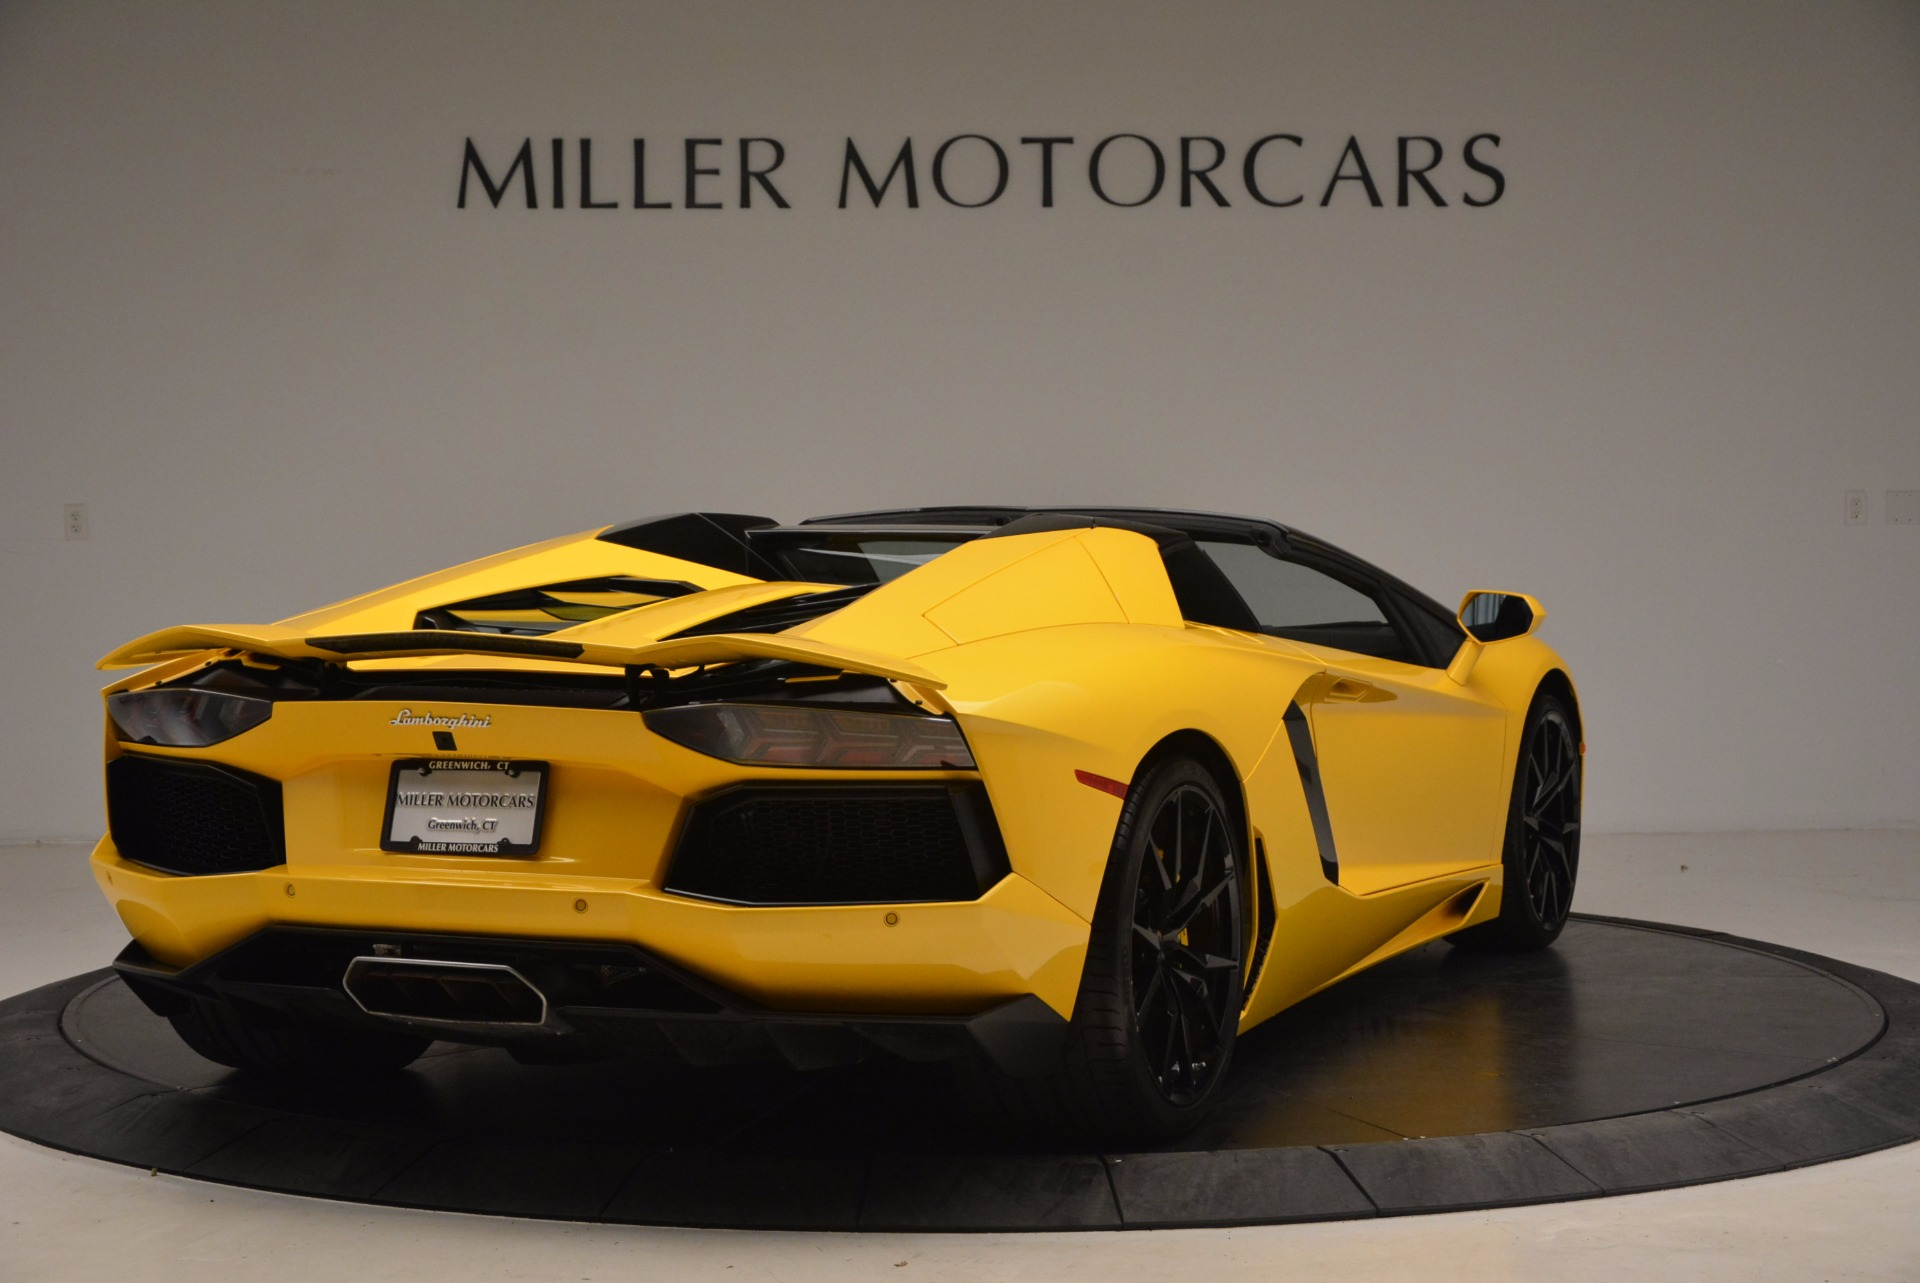 Used 2015 Lamborghini Aventador LP 700-4 Roadster For Sale In Westport, CT 1774_p8